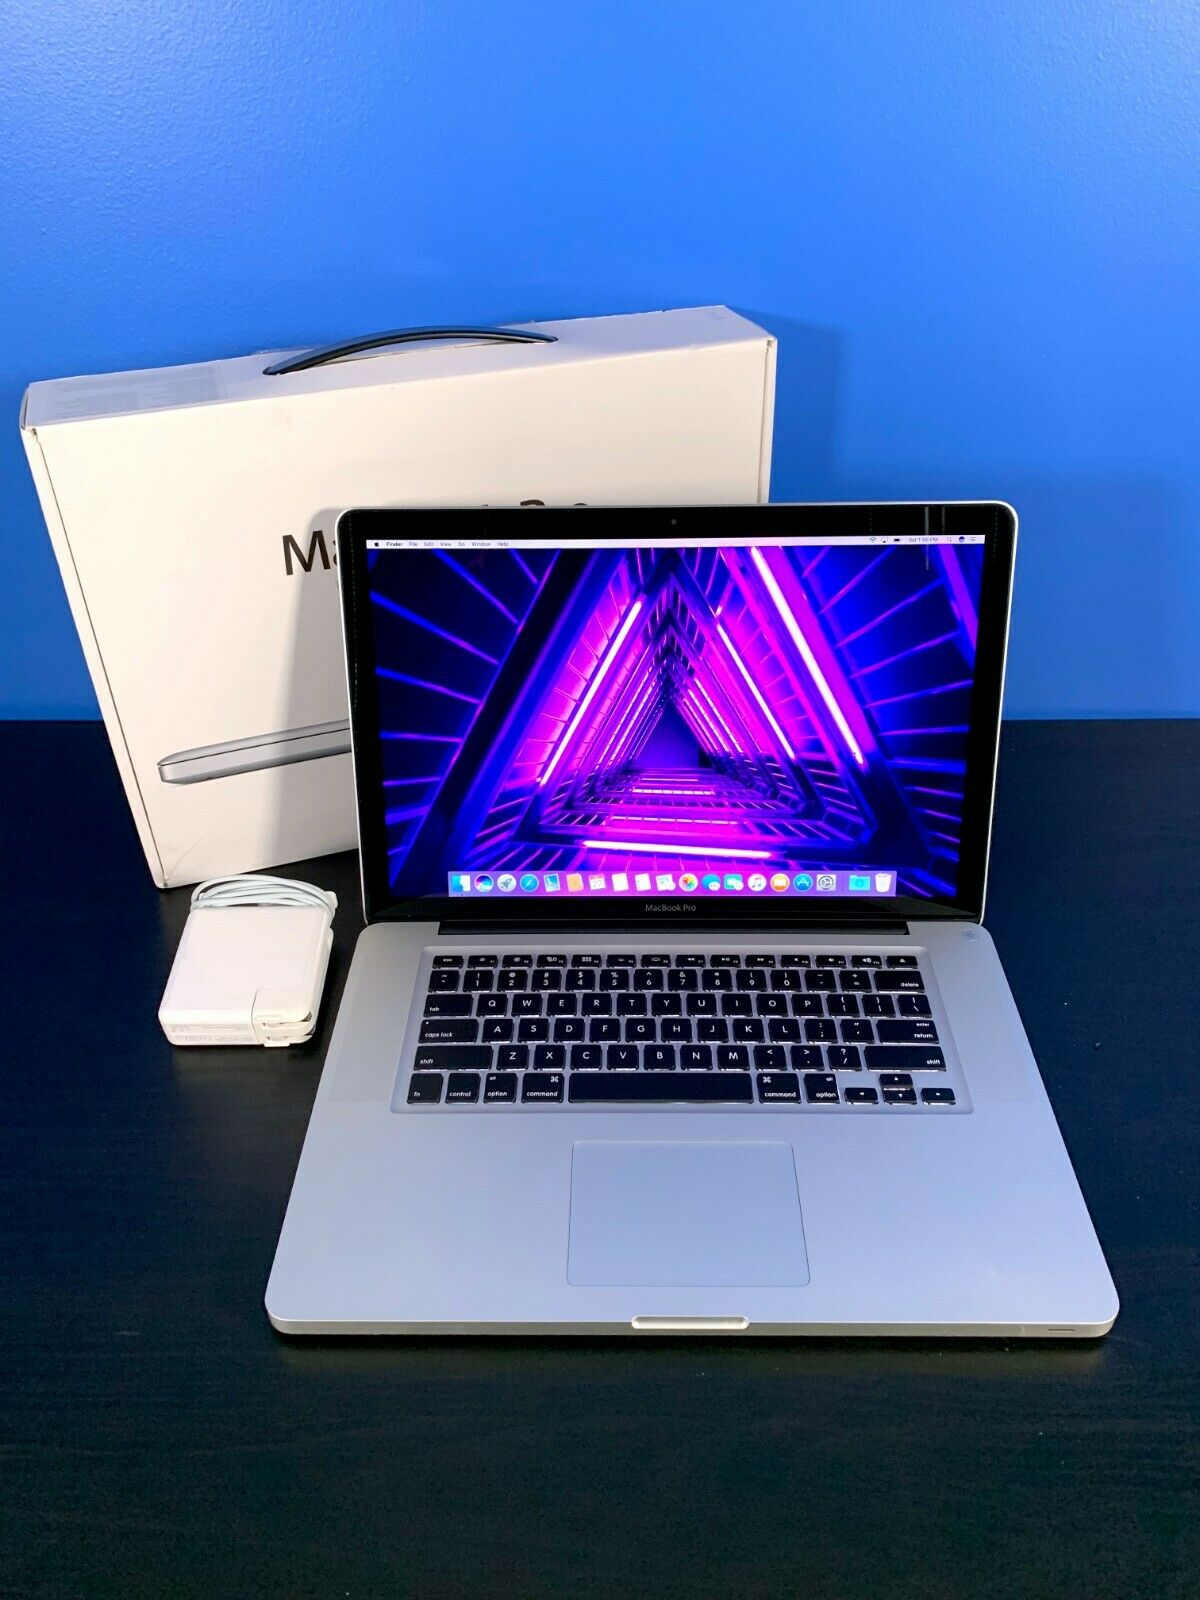 Apple MacBook Pro 15 inch Laptop / QUAD CORE i7 / 16GB RAM / OS2018 / 1TB SSD!. Buy it now for 779.00